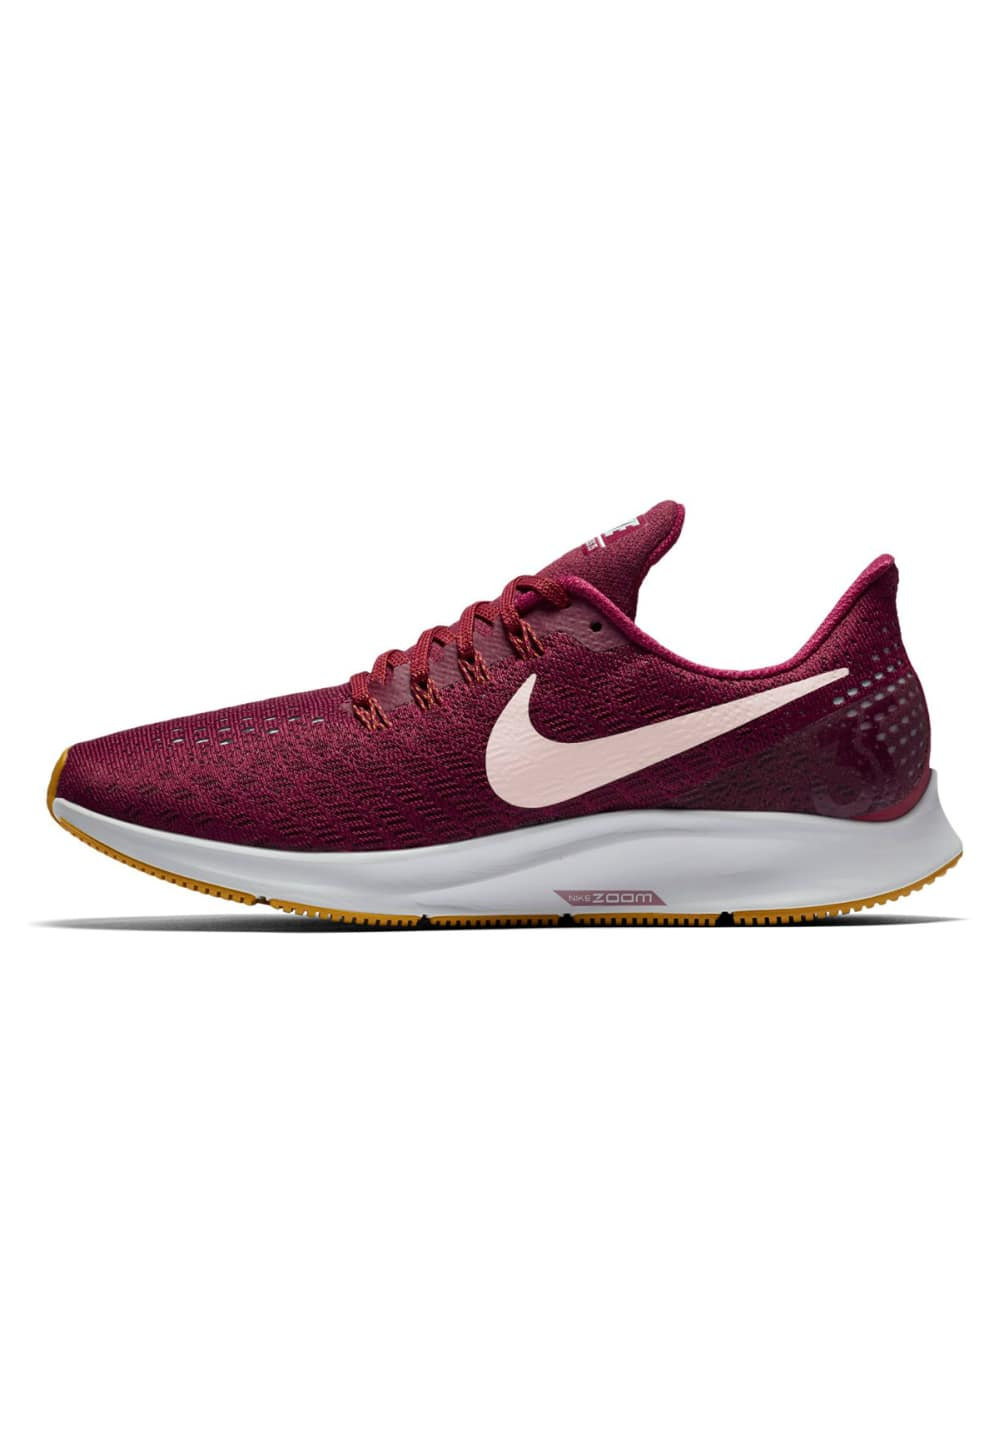 Zoom Femme 35 Chaussures Nike Air Rouge Pegasus Pour Running PXwk8n0O